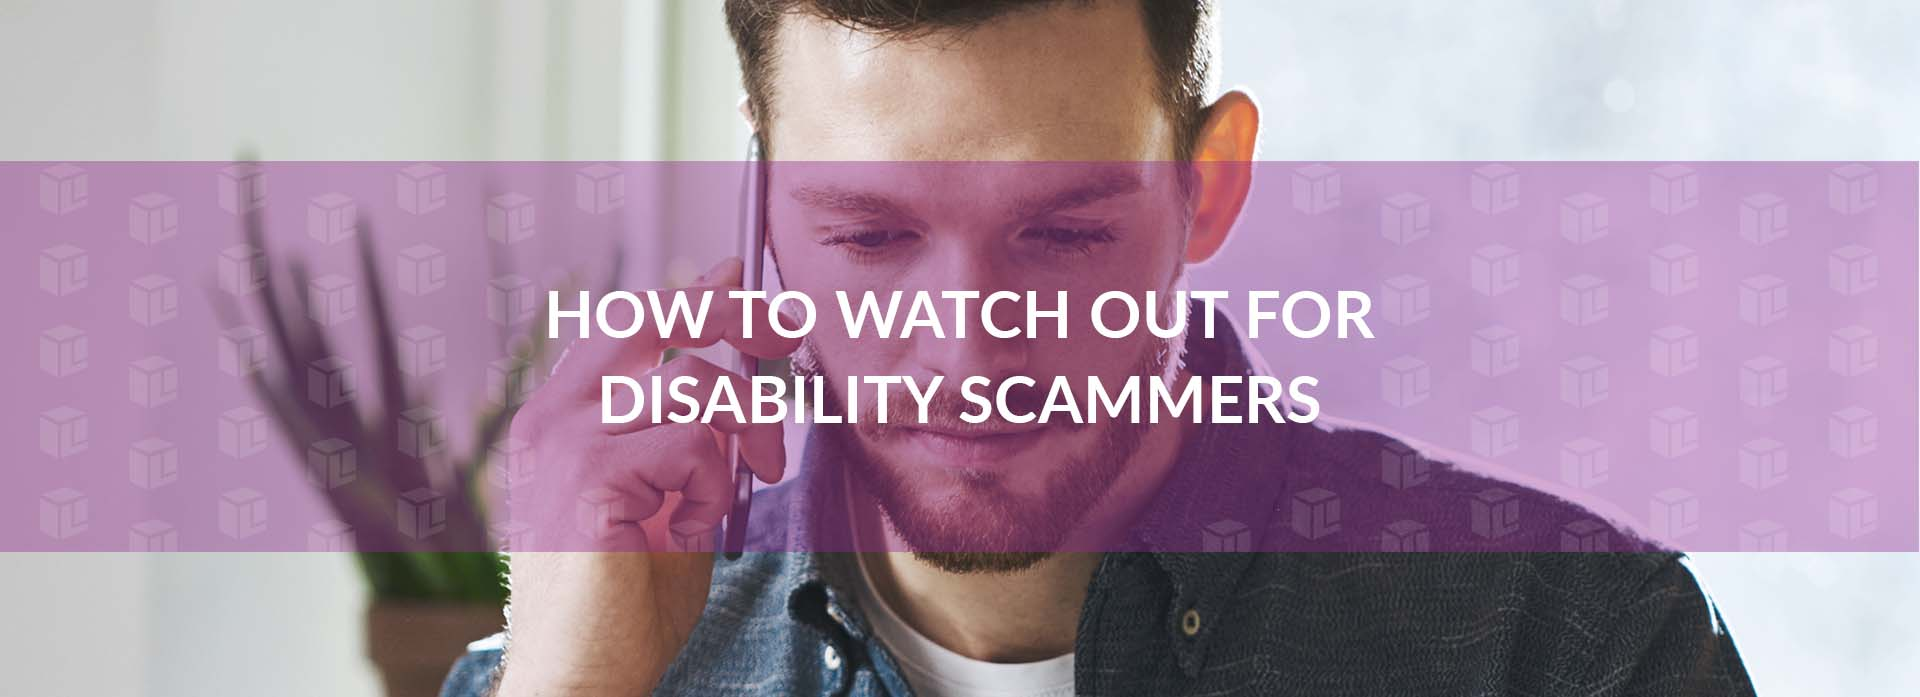 How To Watch Out For Disability Scammers